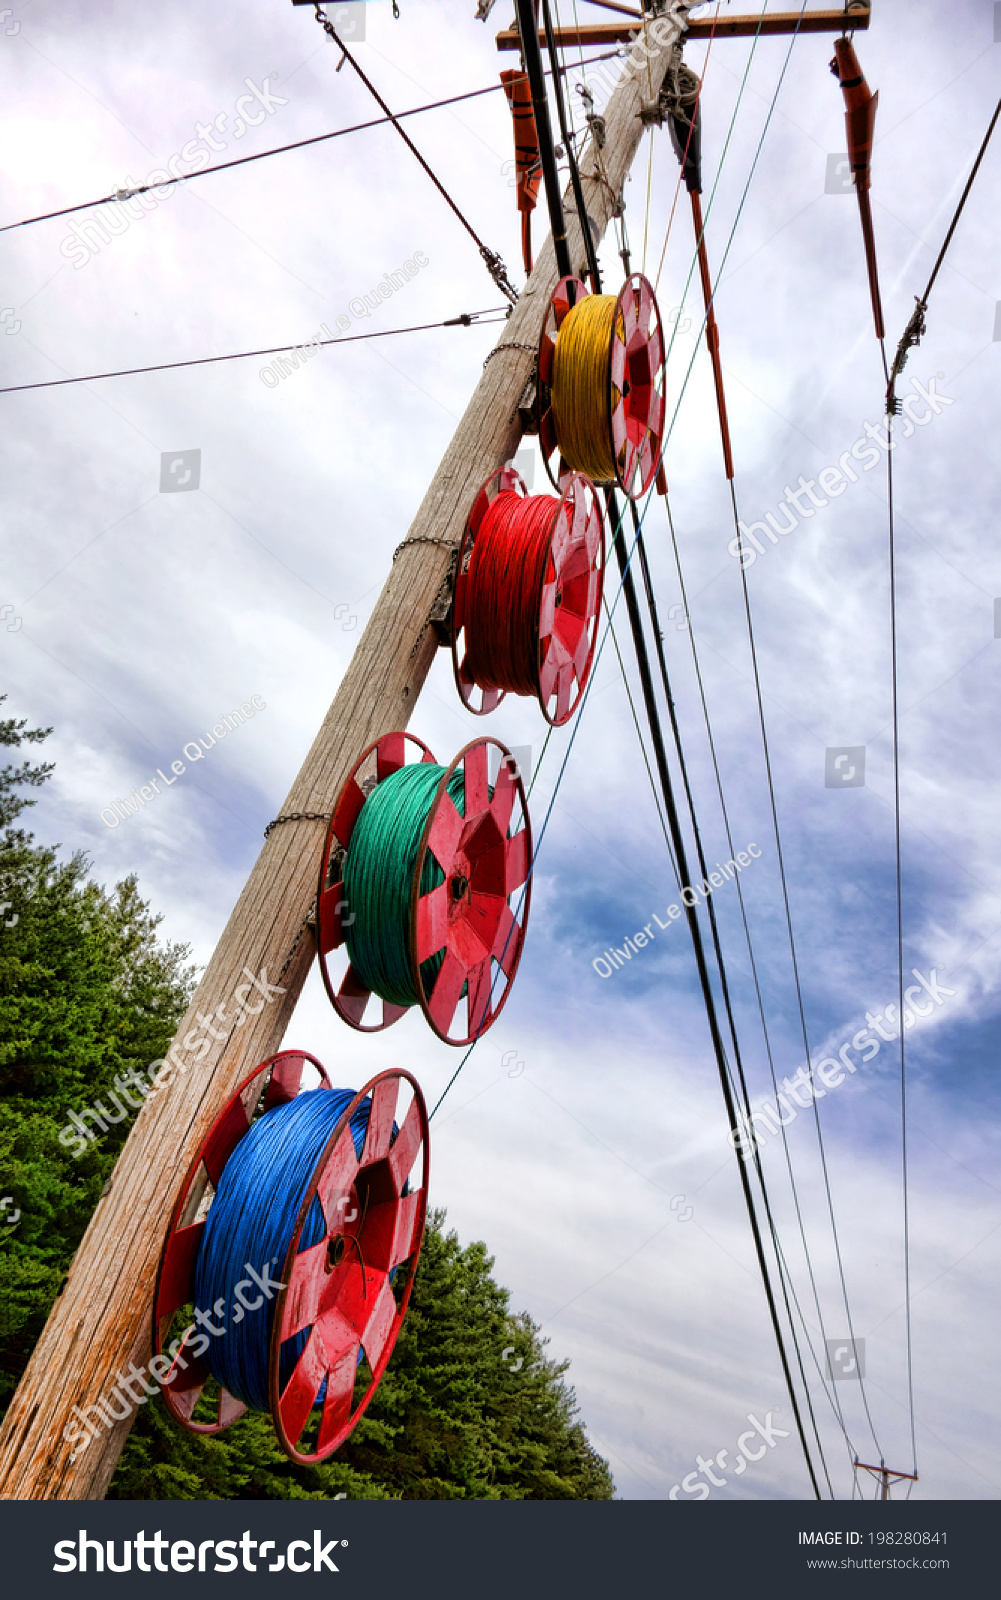 Spools Color Nylon Pull Ropes Hanging Stock Photo (Edit Now ...